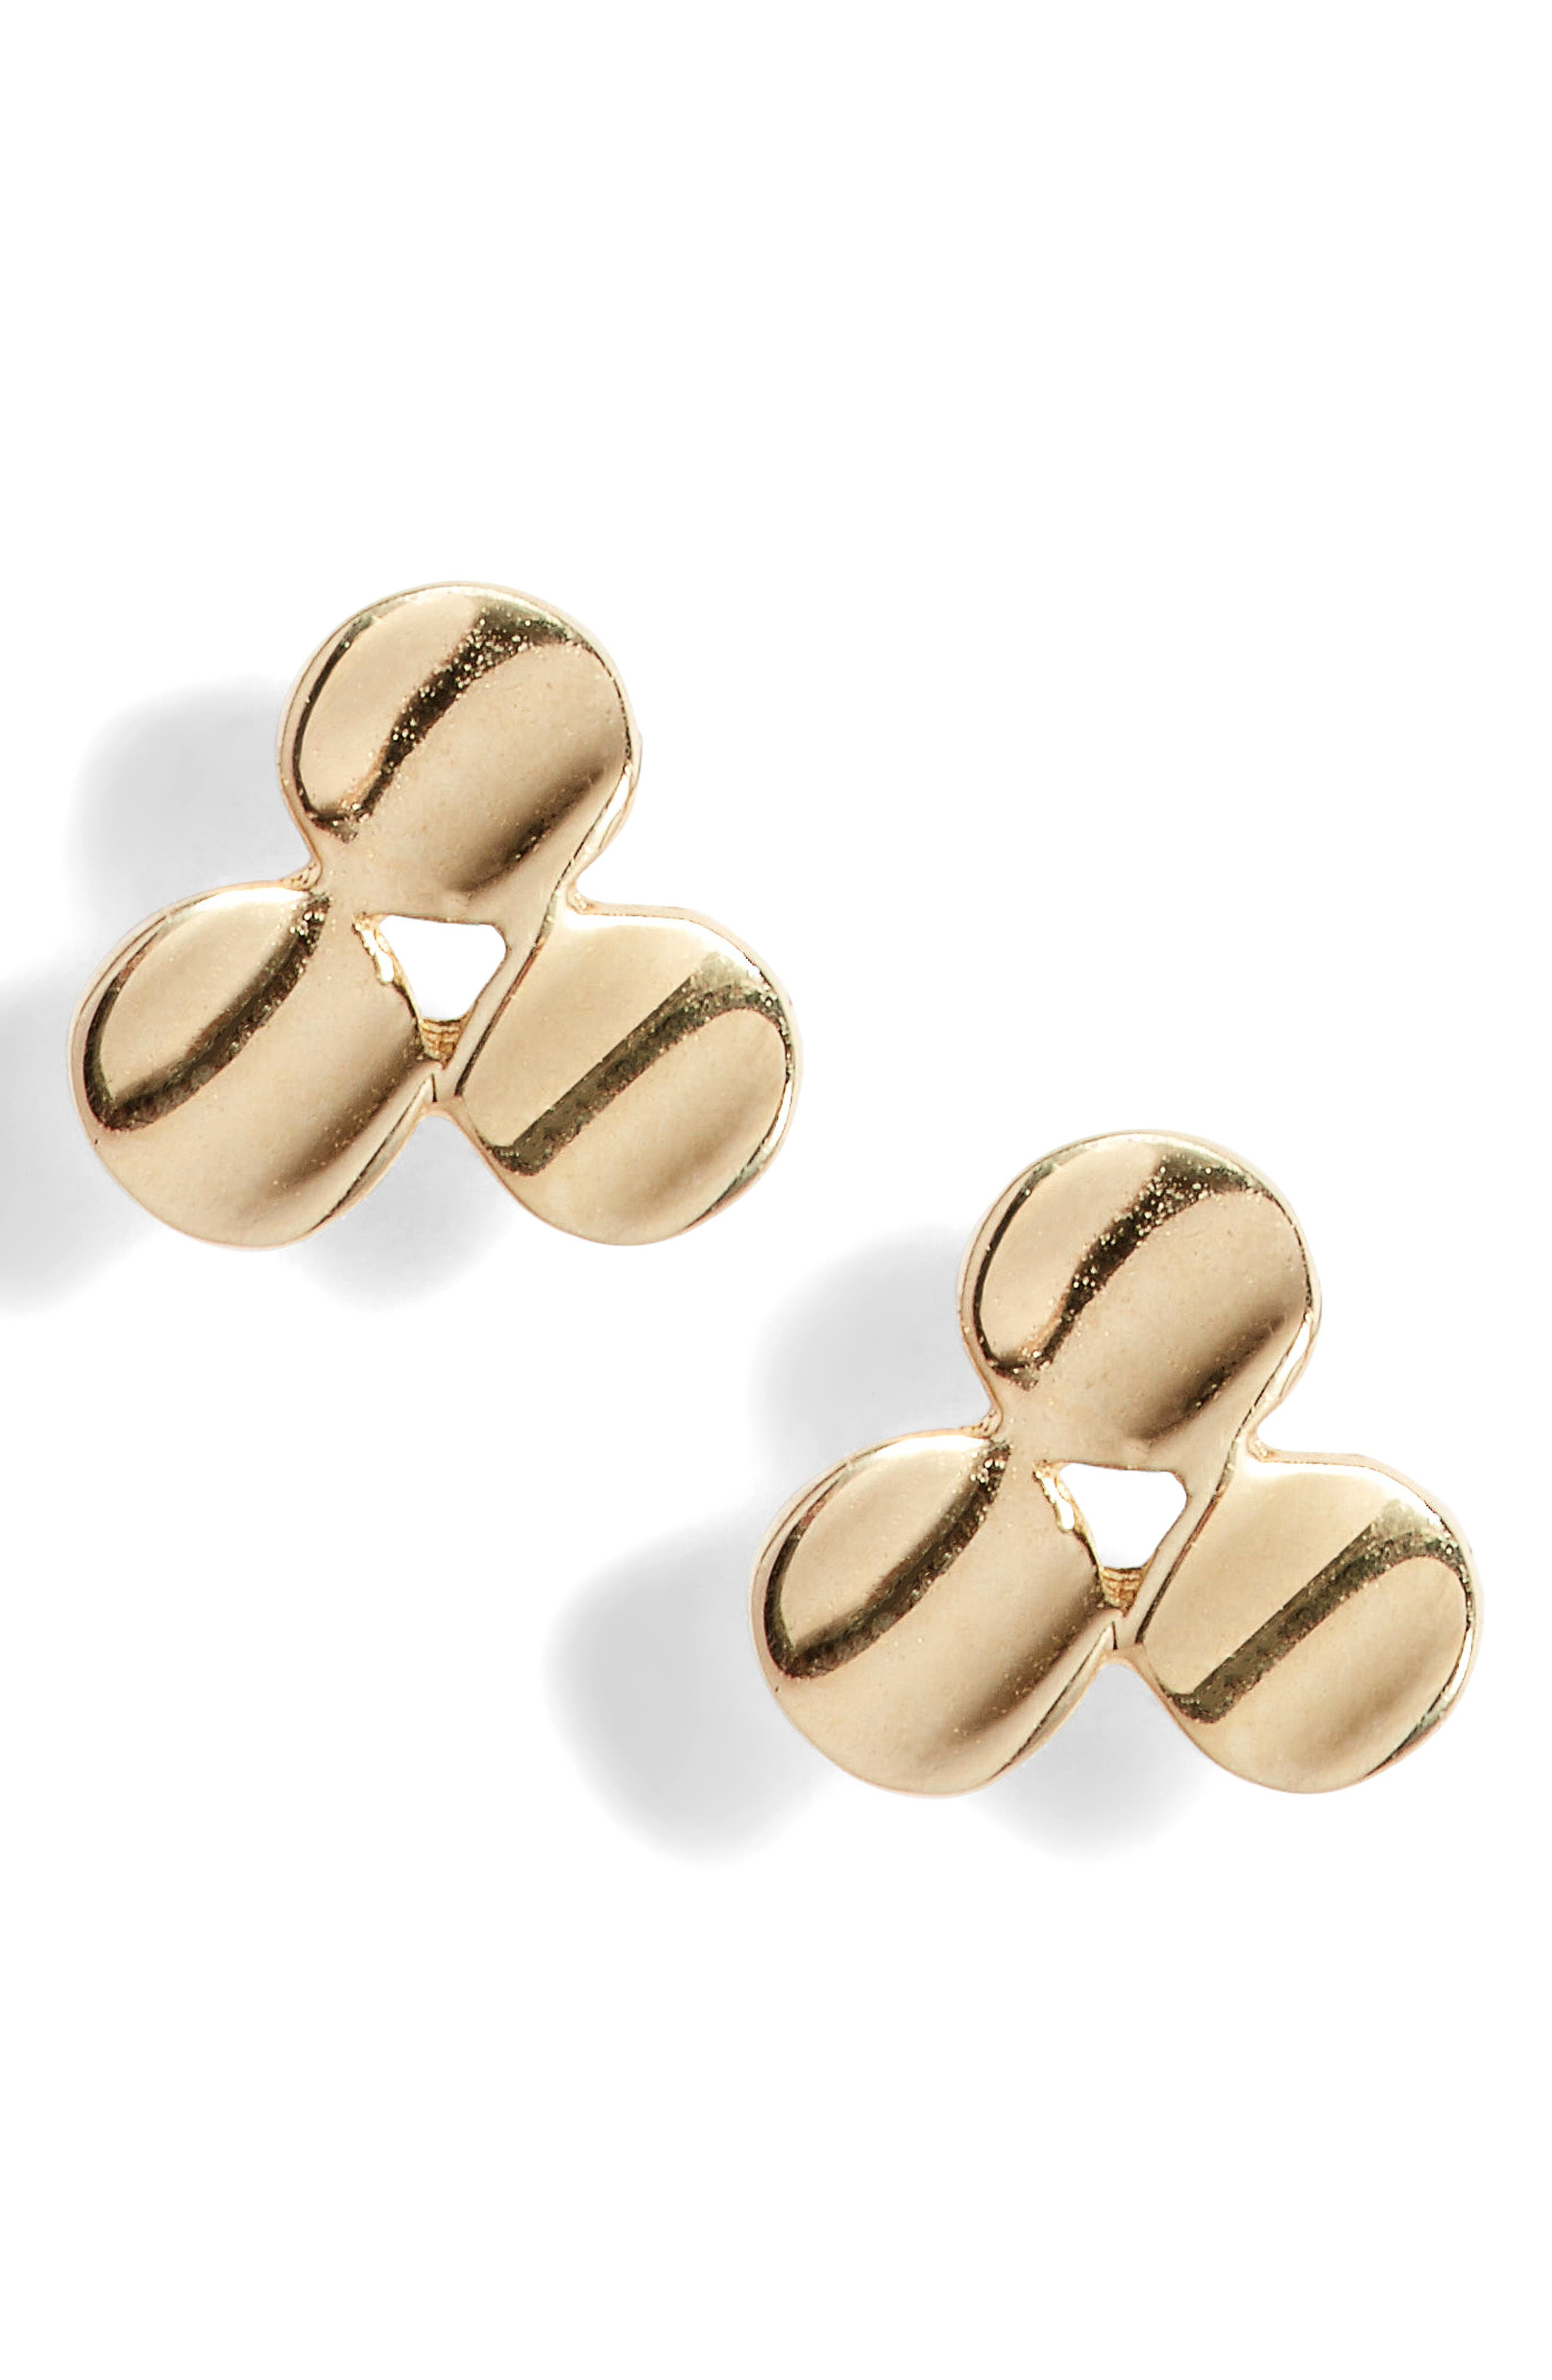 Clover Stud Earrings,                             Main thumbnail 1, color,                             YELLOW GOLD